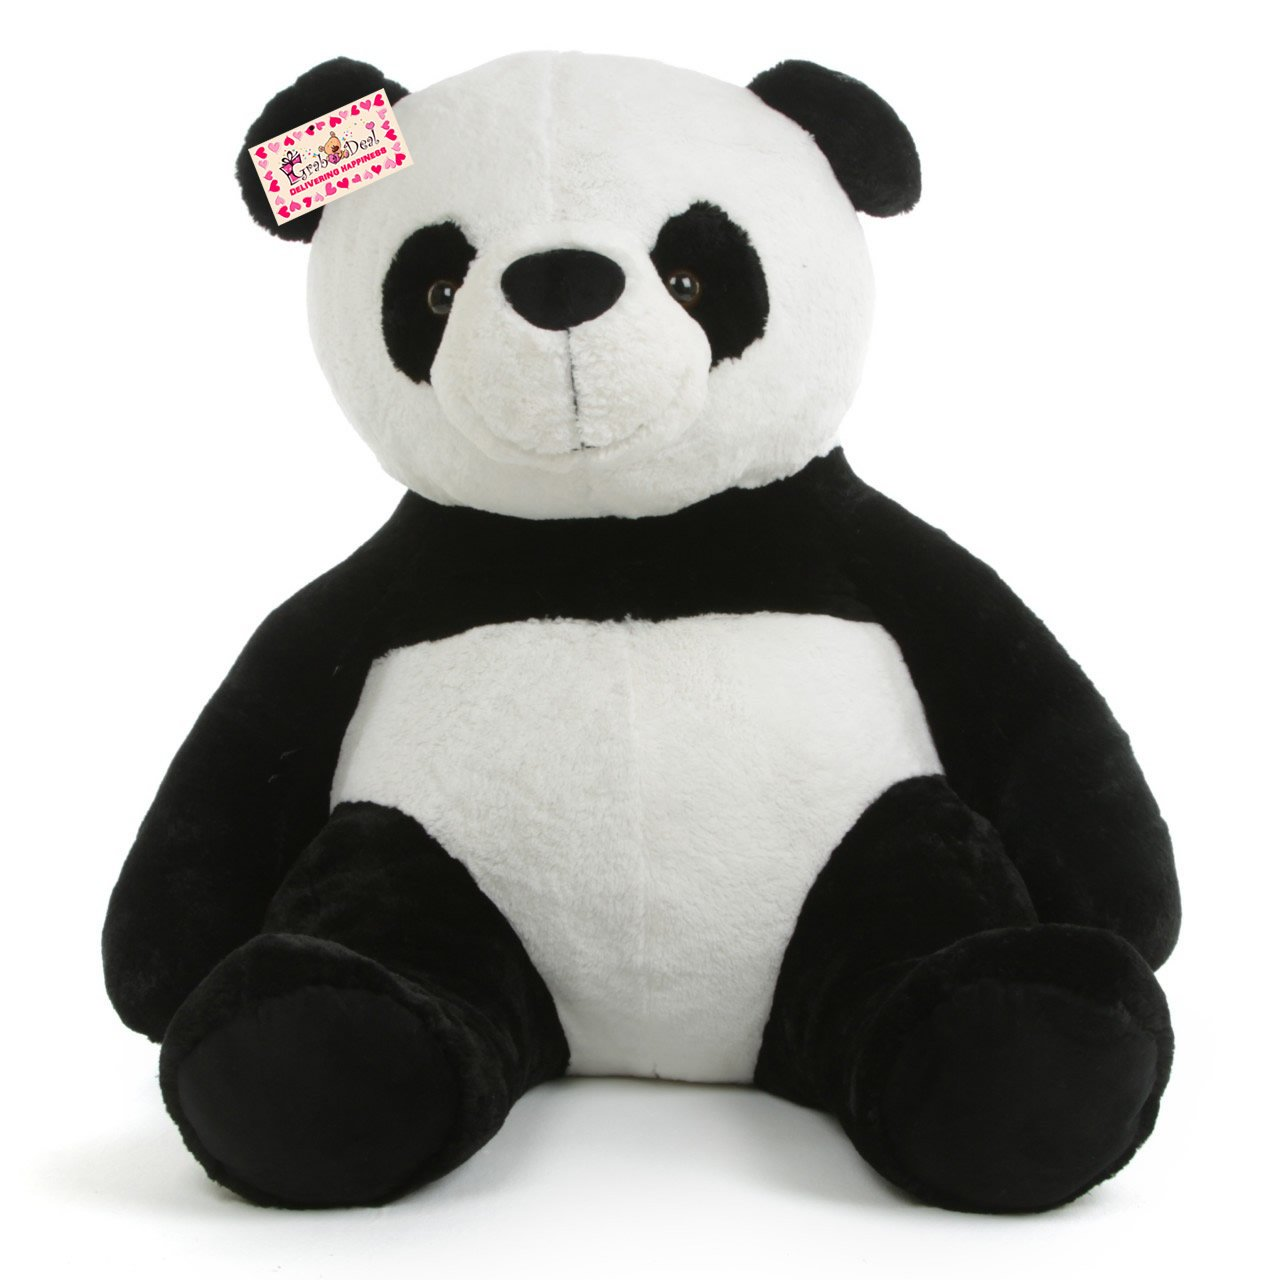 buy giant  feet papa panda teddy bear soft toy online at low  - buy giant  feet papa panda teddy bear soft toy online at low prices inindia  amazonin